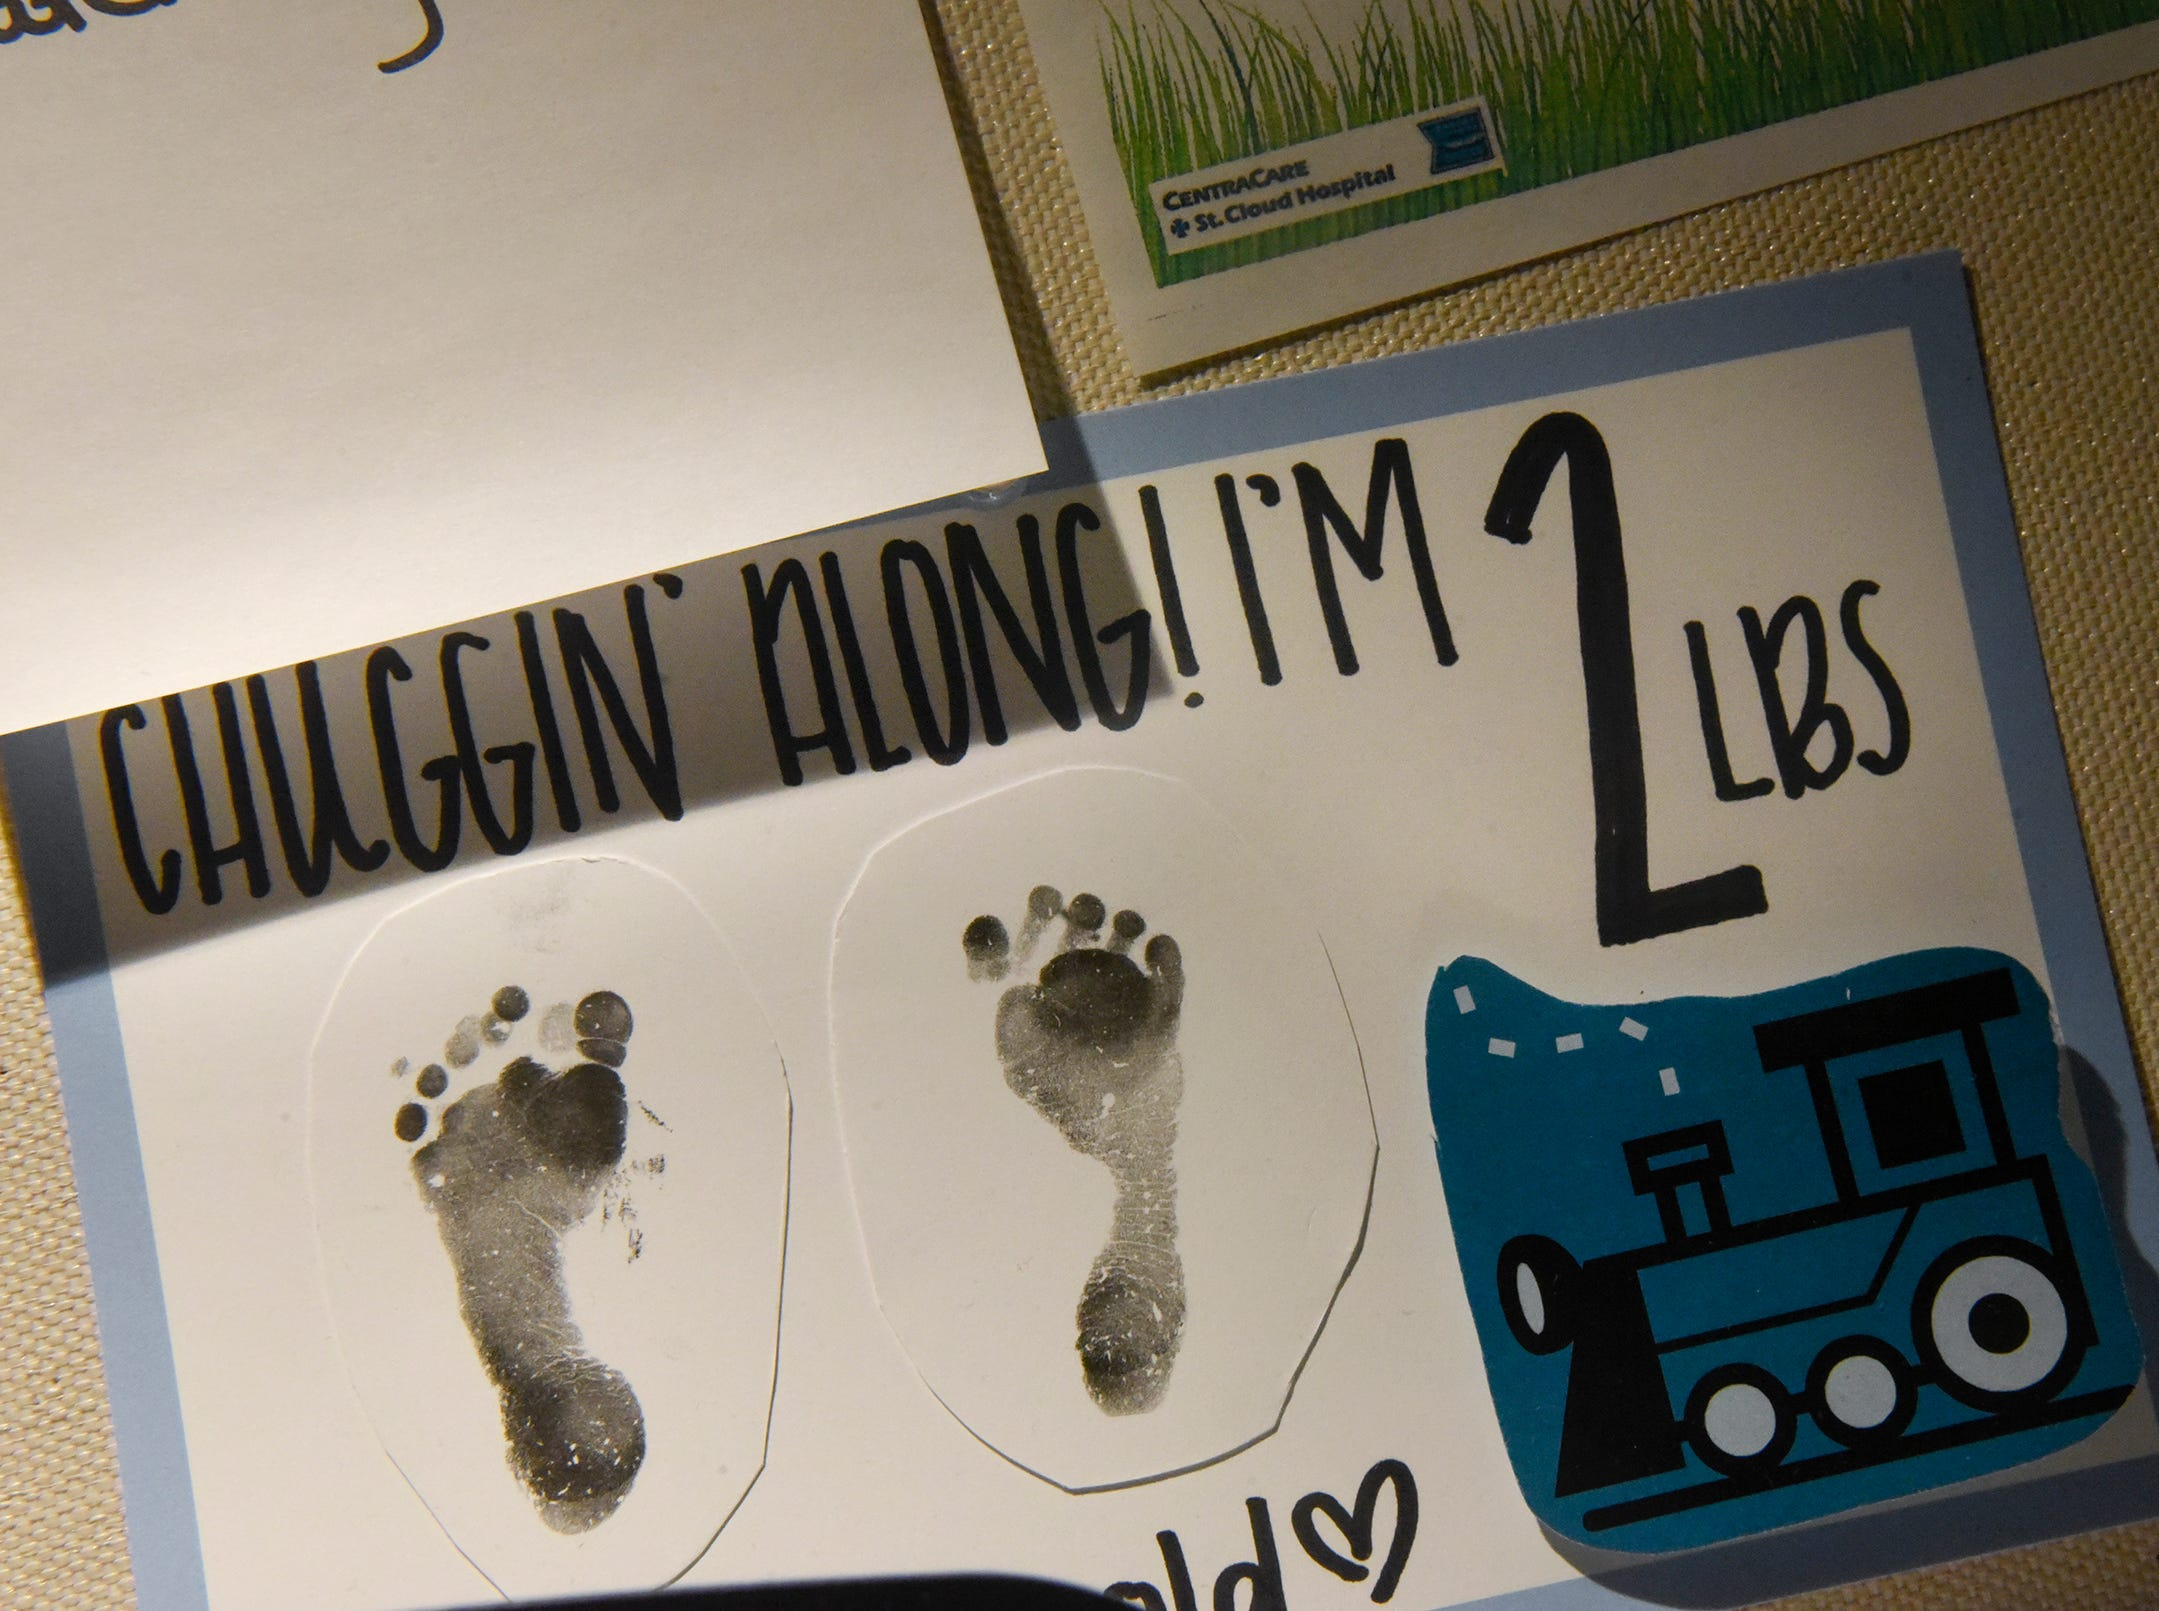 Signs marking the progress of Joshua Johnson hang on the wall of his room Wednesday, Dec. 12, at the St. Cloud Hospital's Neonatal Intensive Care Unit.